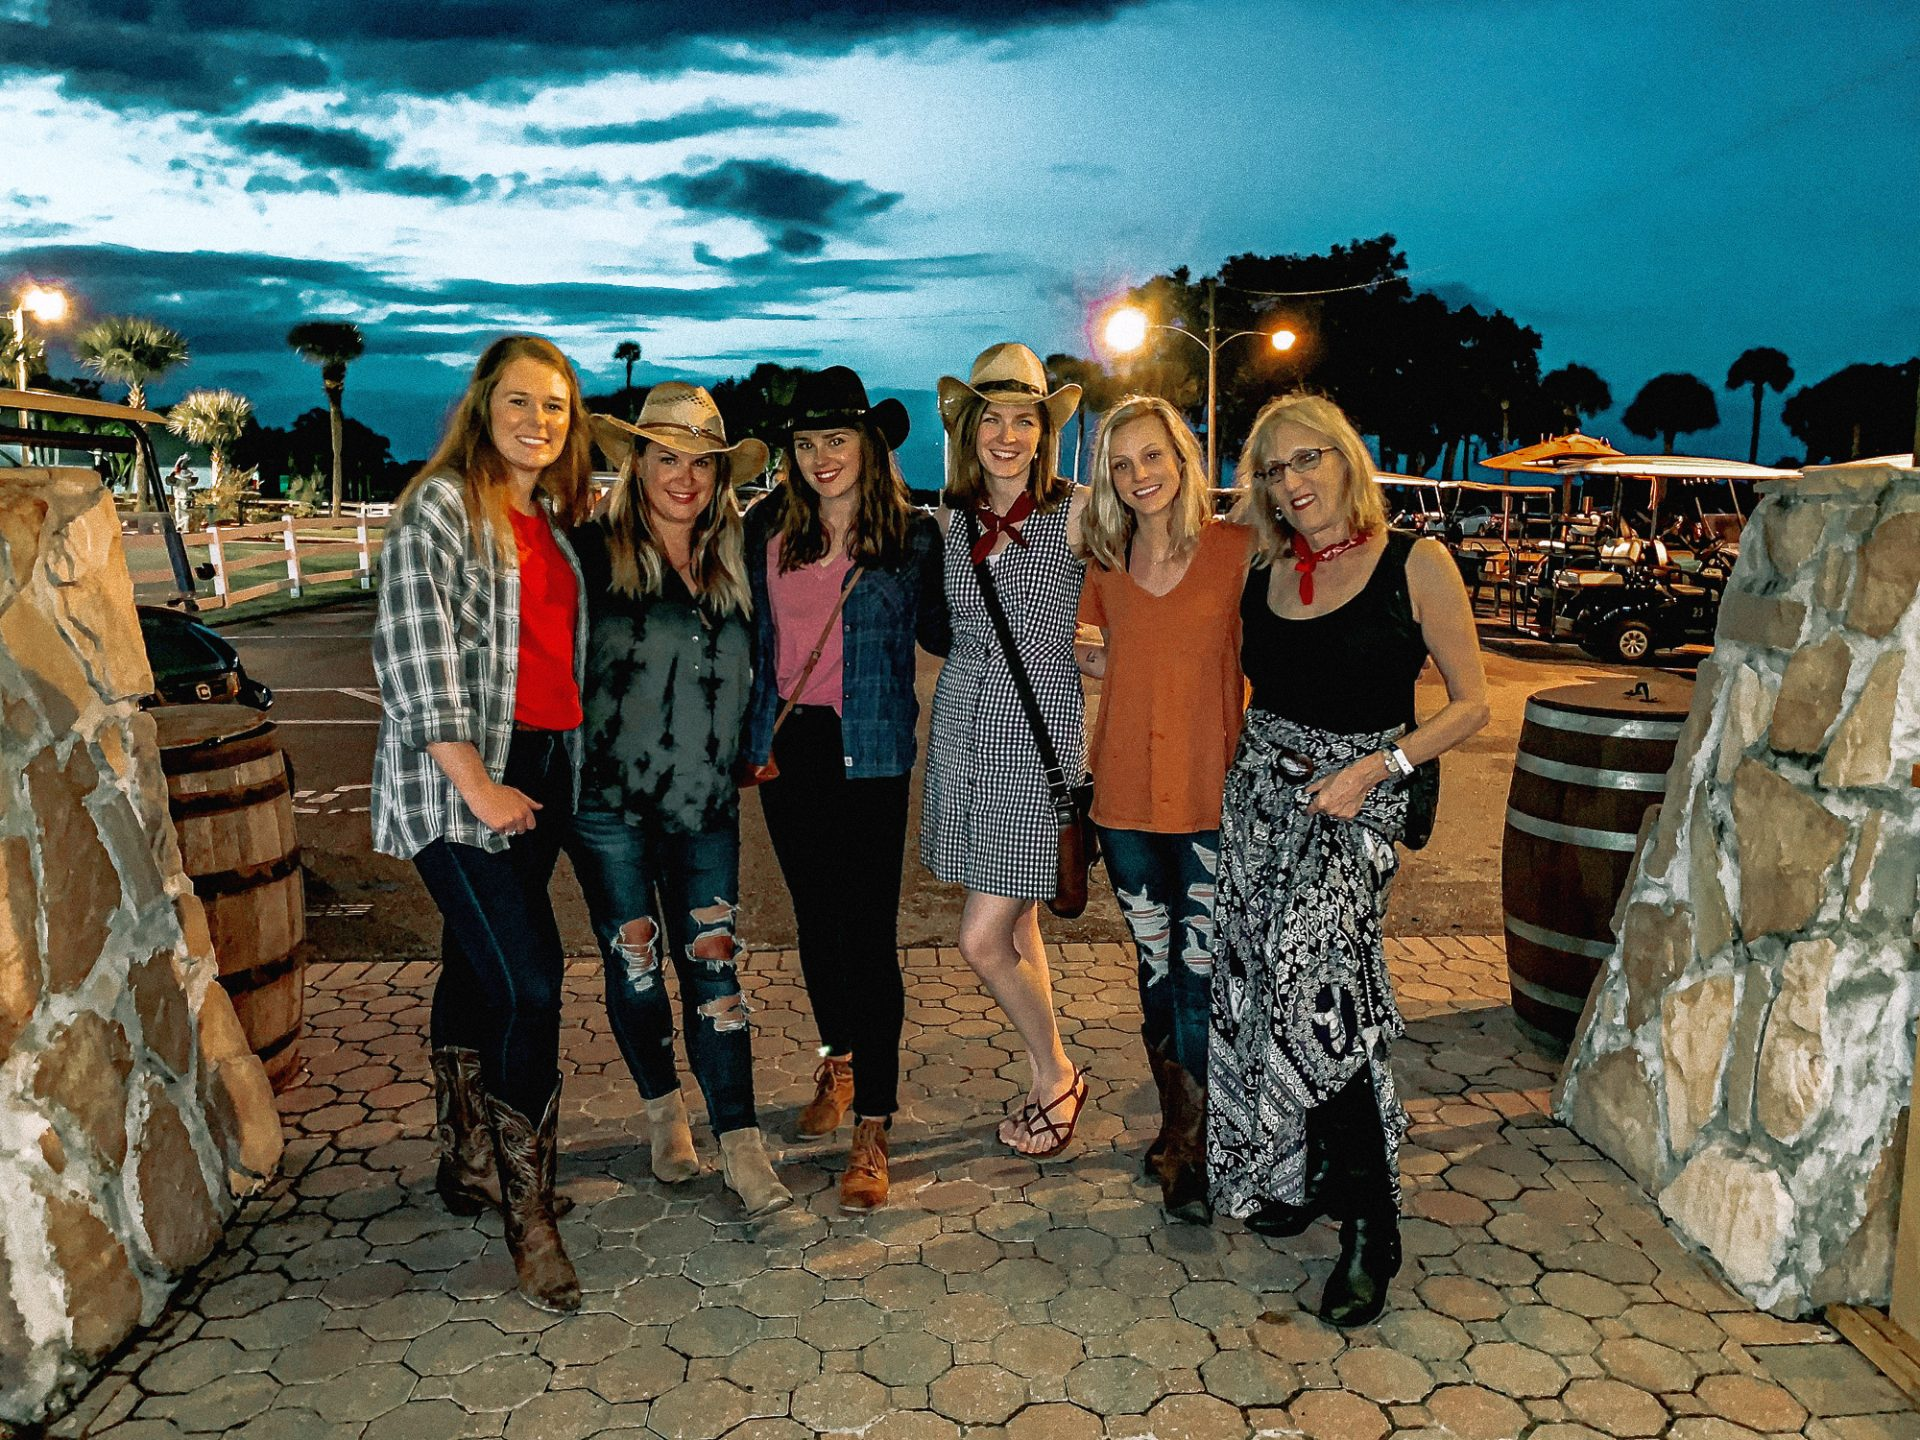 Westgate Ranch, Westgate resorts, West gate ranch, Westgate river ranch, florida, horseback riding, glamping, tent, teepee, horseback riding, skeet shooting, archery, adult summer camp, rodeo, country, cowgirl, horses, farm, Orlando florida, glamping experience , campfire